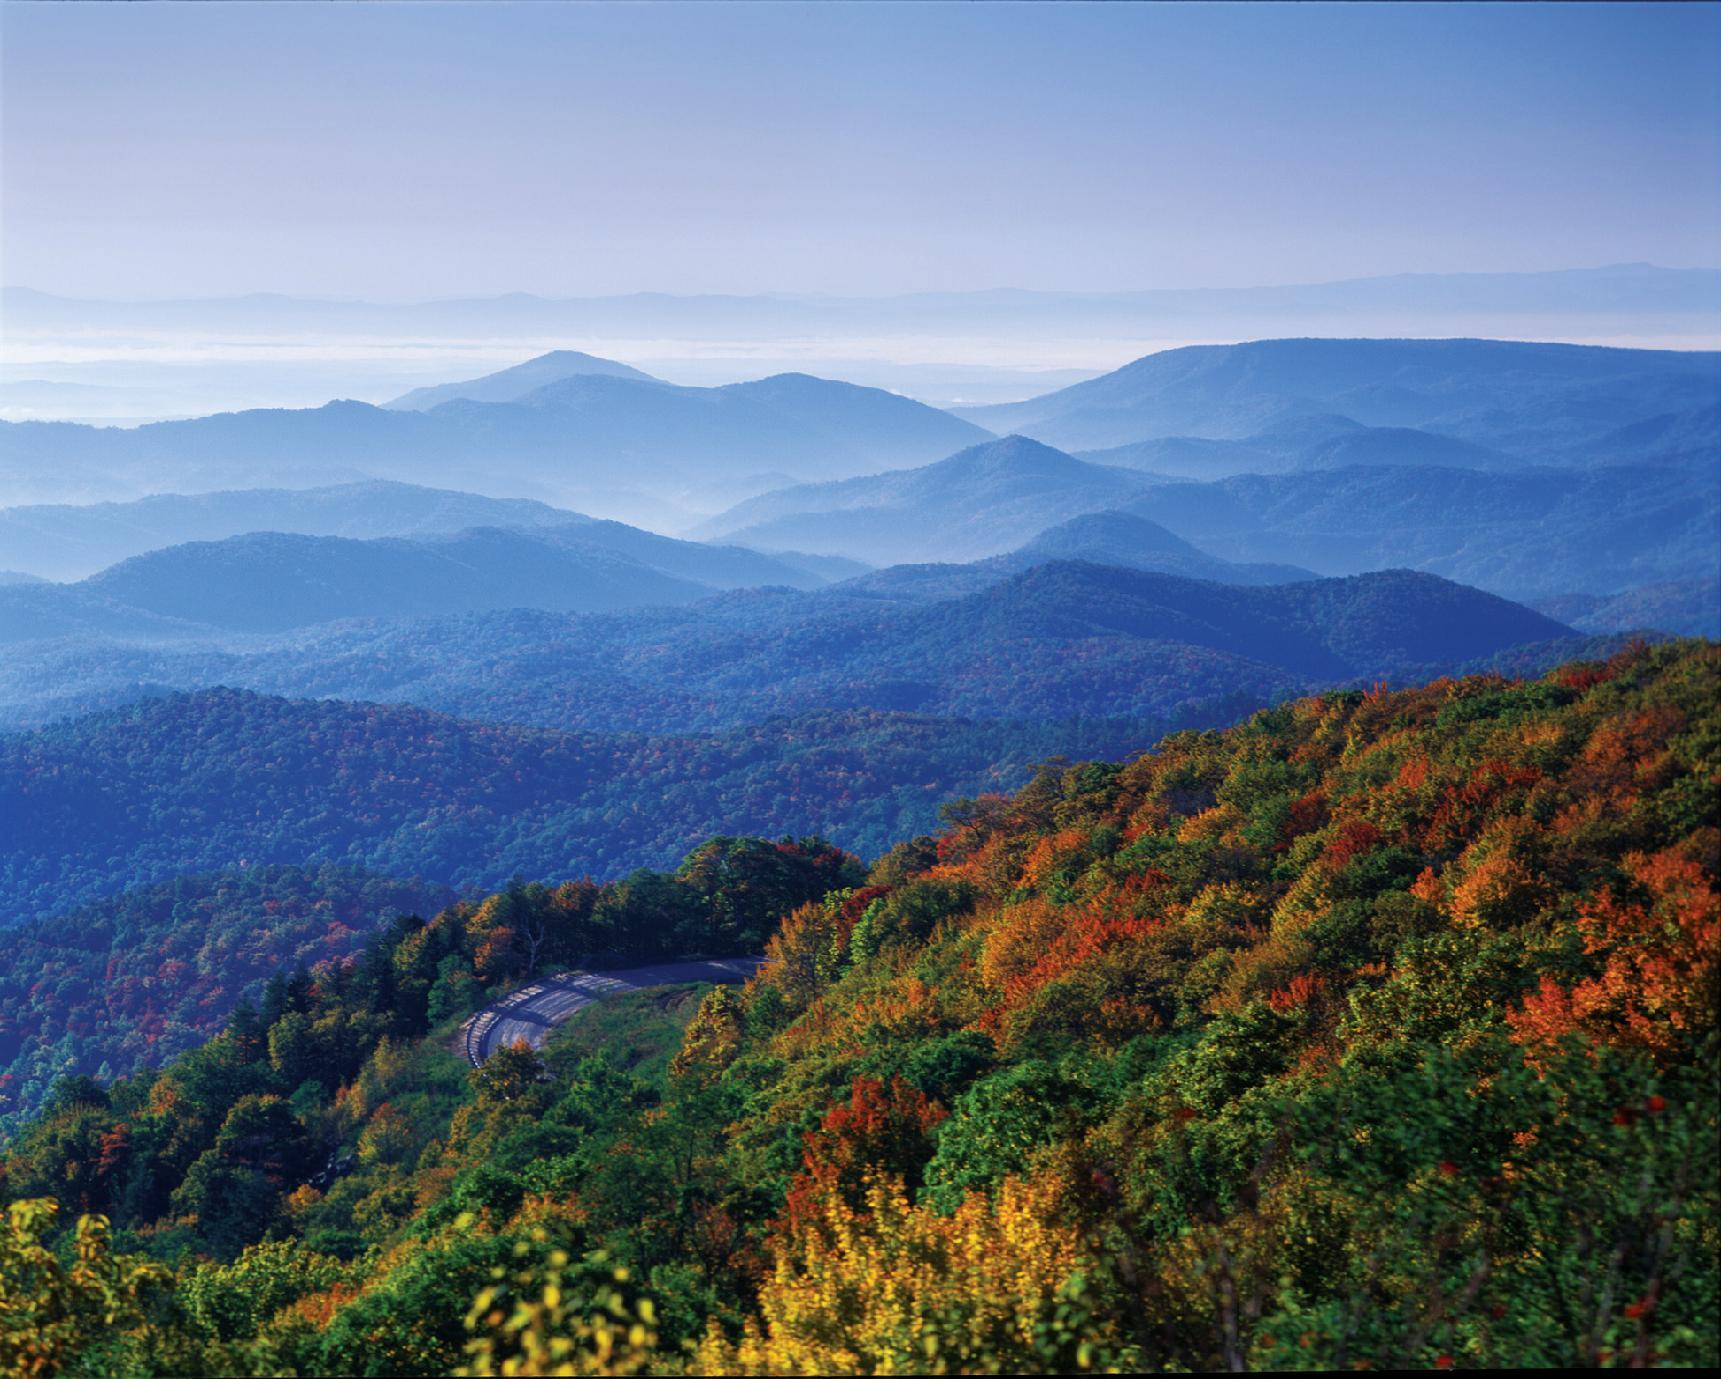 Computer Wallpapers, Desktop Backgrounds Blue Ridge Parkway, 301.74